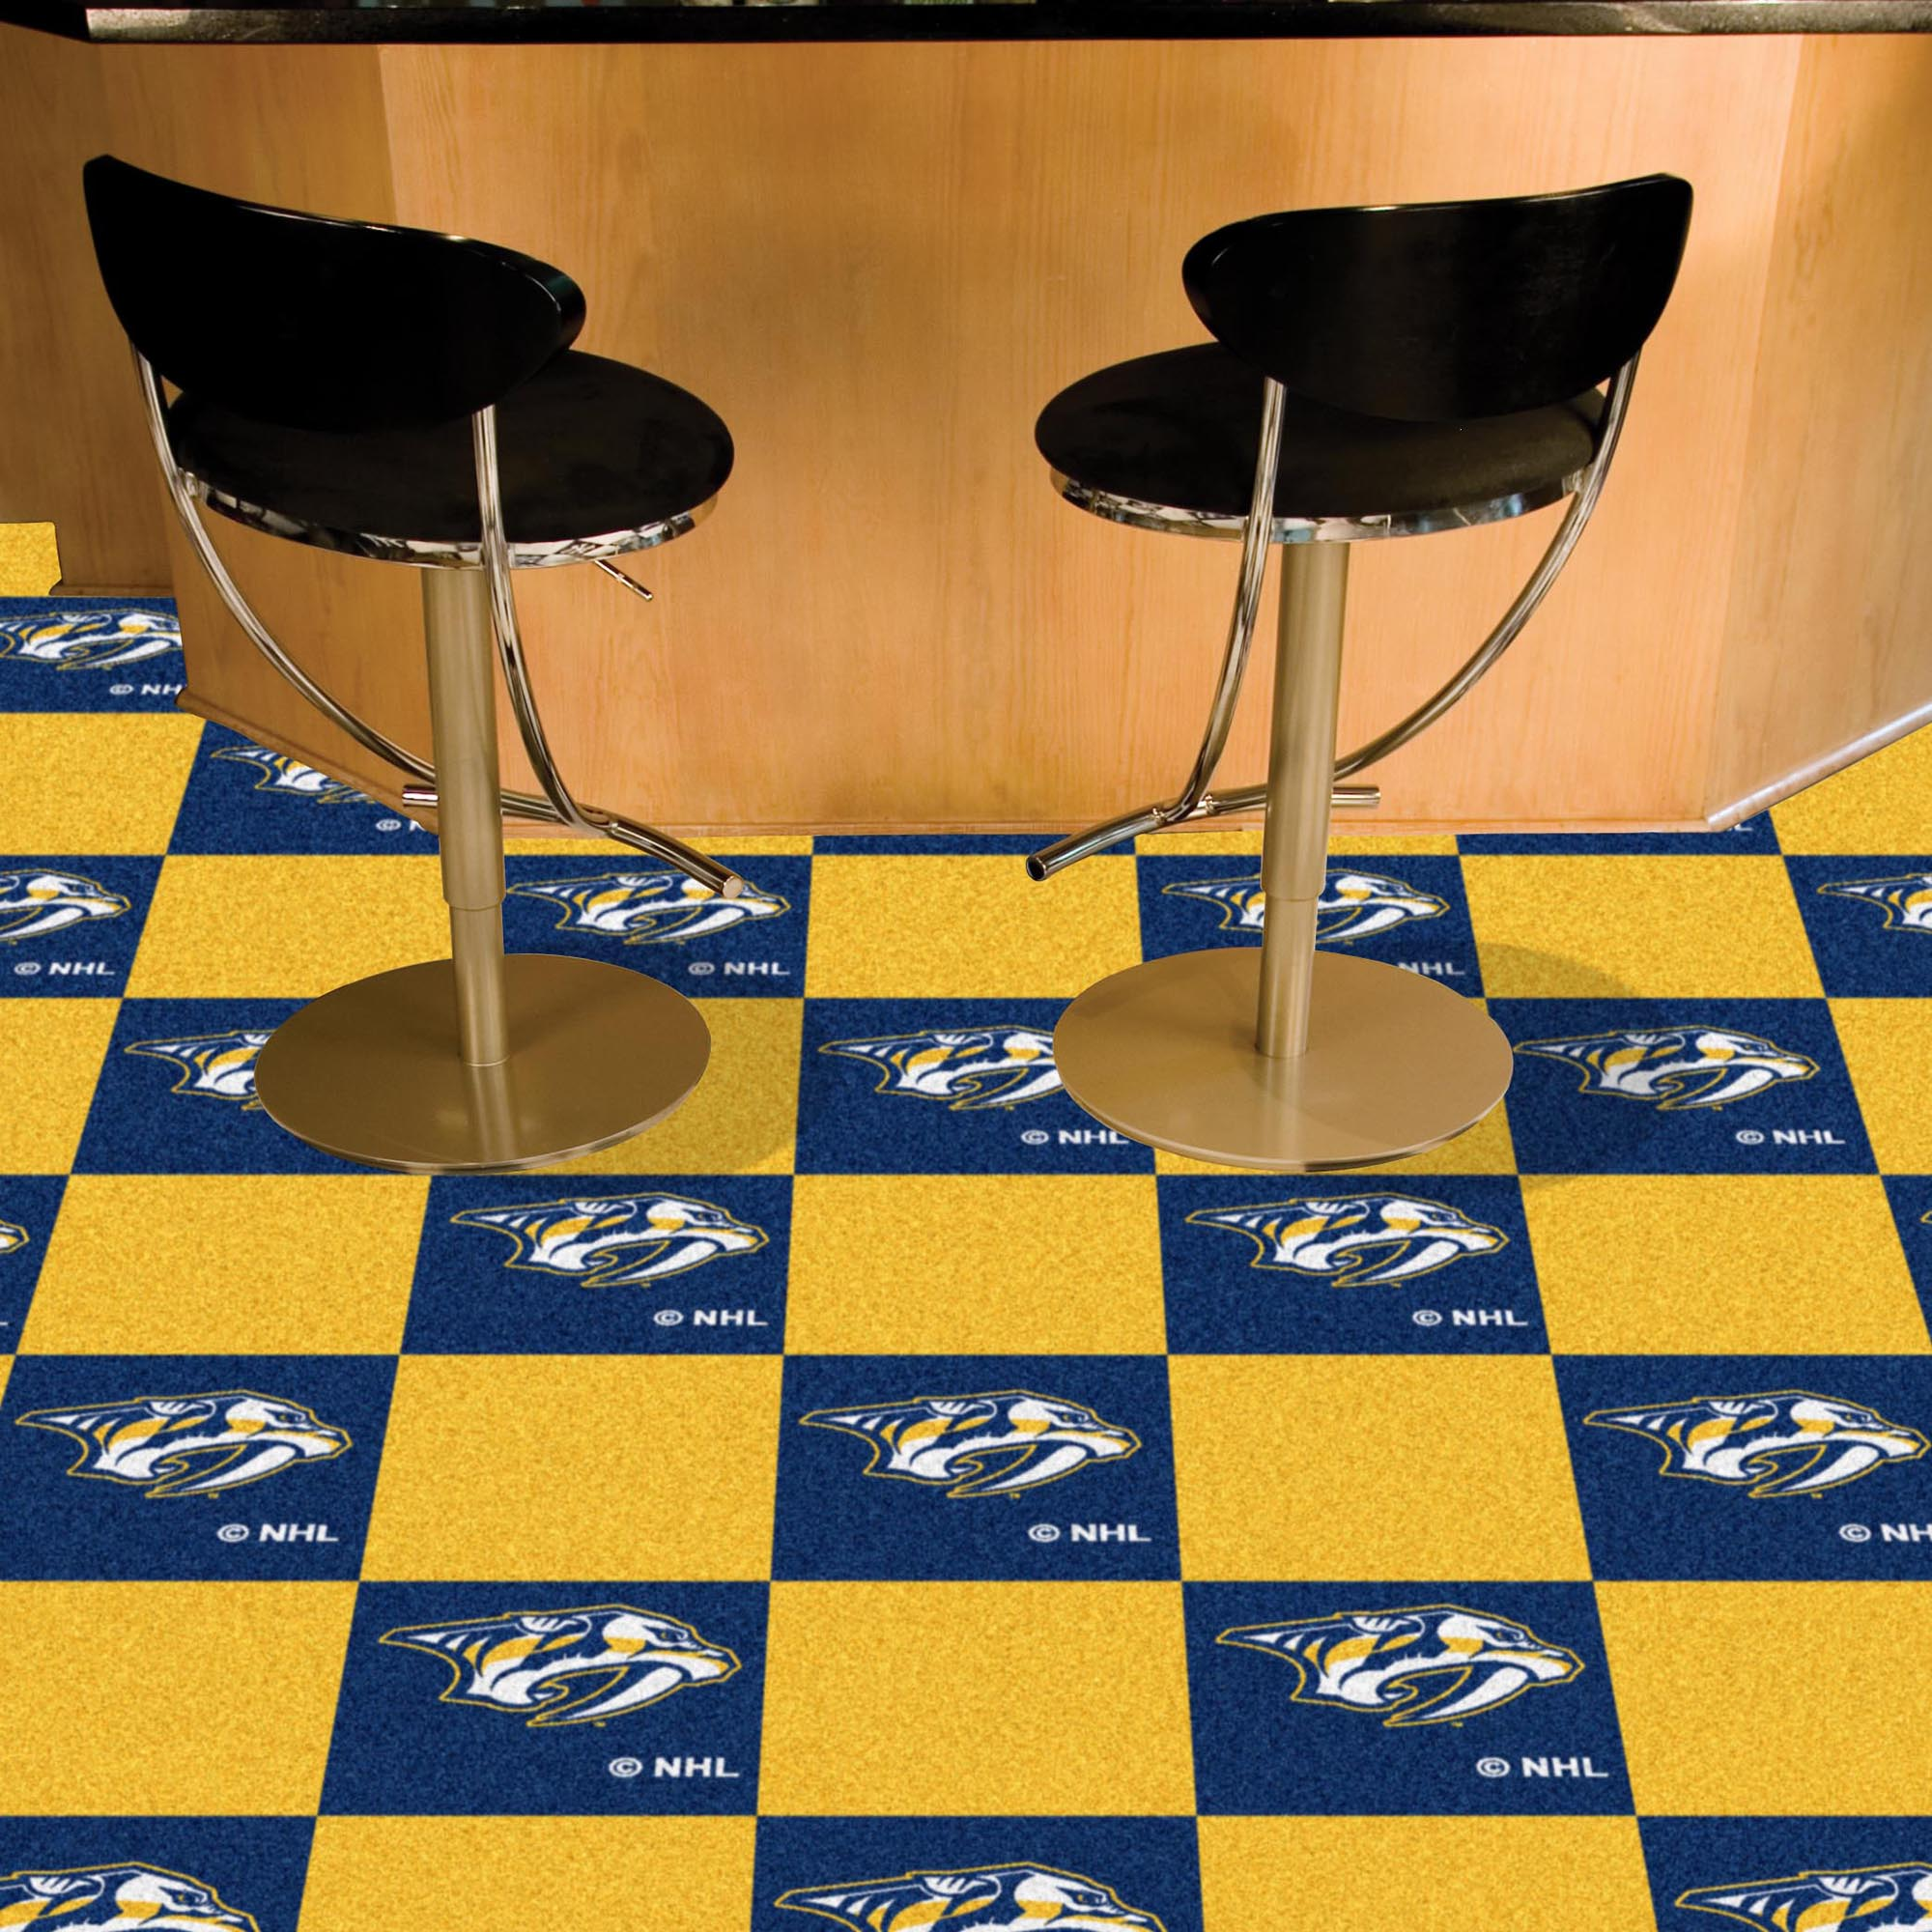 Nashville Predators Carpet Tiles 18x18 in.